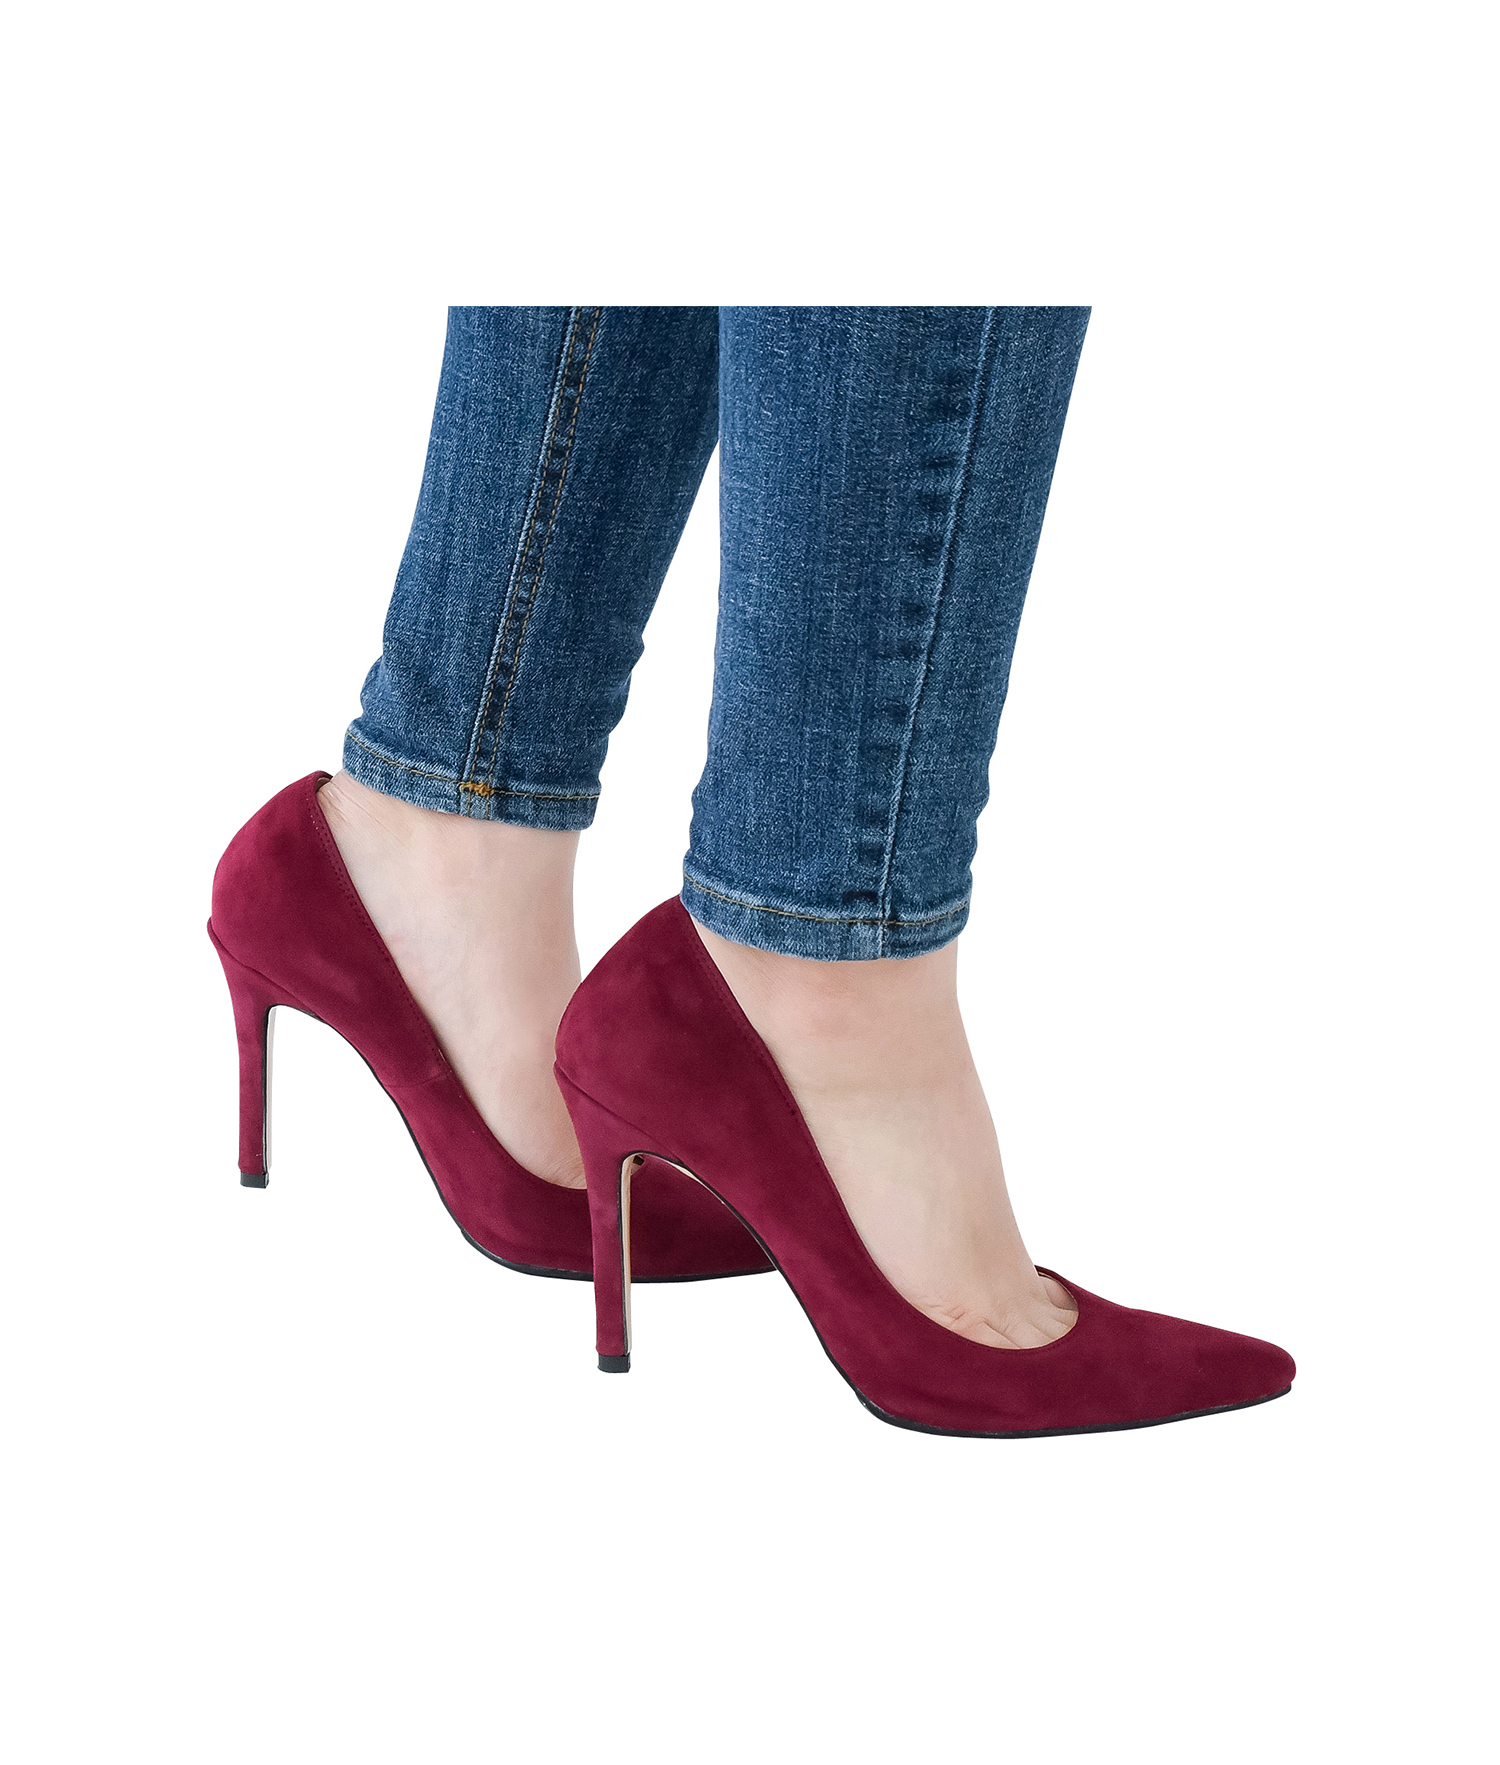 962acad221fd AnnaKastle Womens Pointy Toe High Heel Court Shoes Burgundy